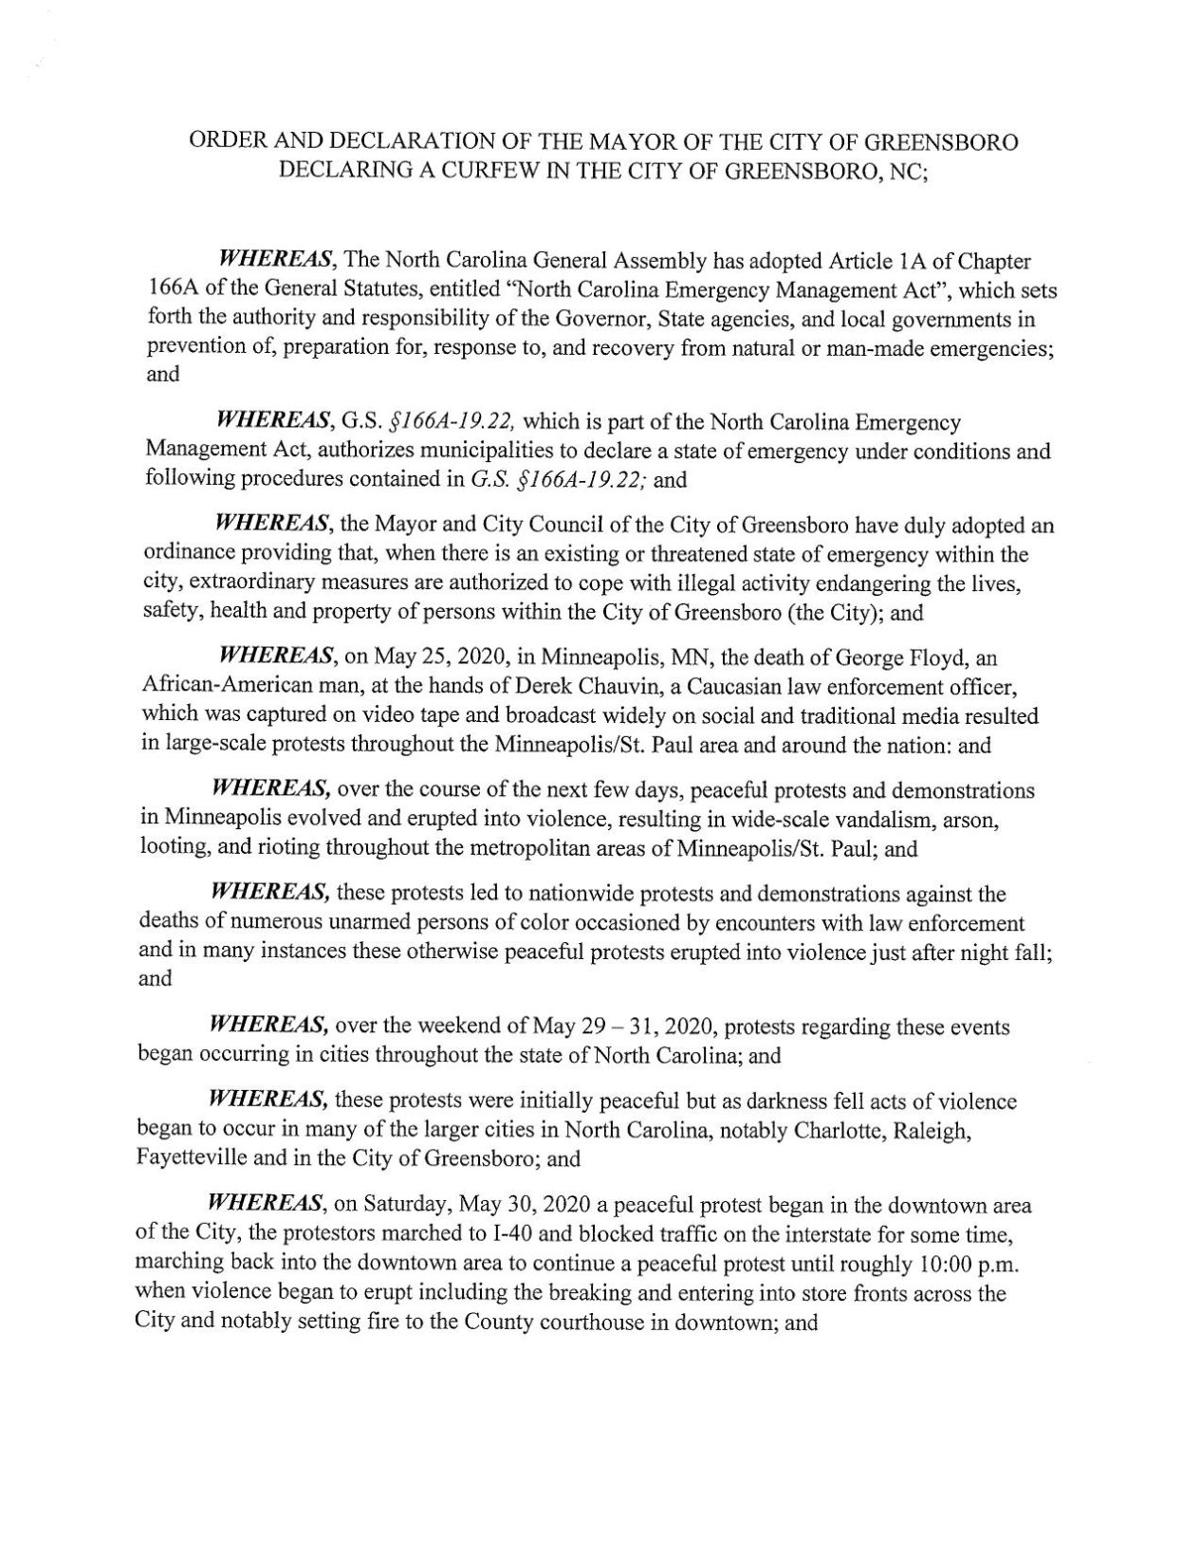 Order and Declaration of the Mayor of the City of Greensboro Declaring a Curfew in the City of Greensboro, NC